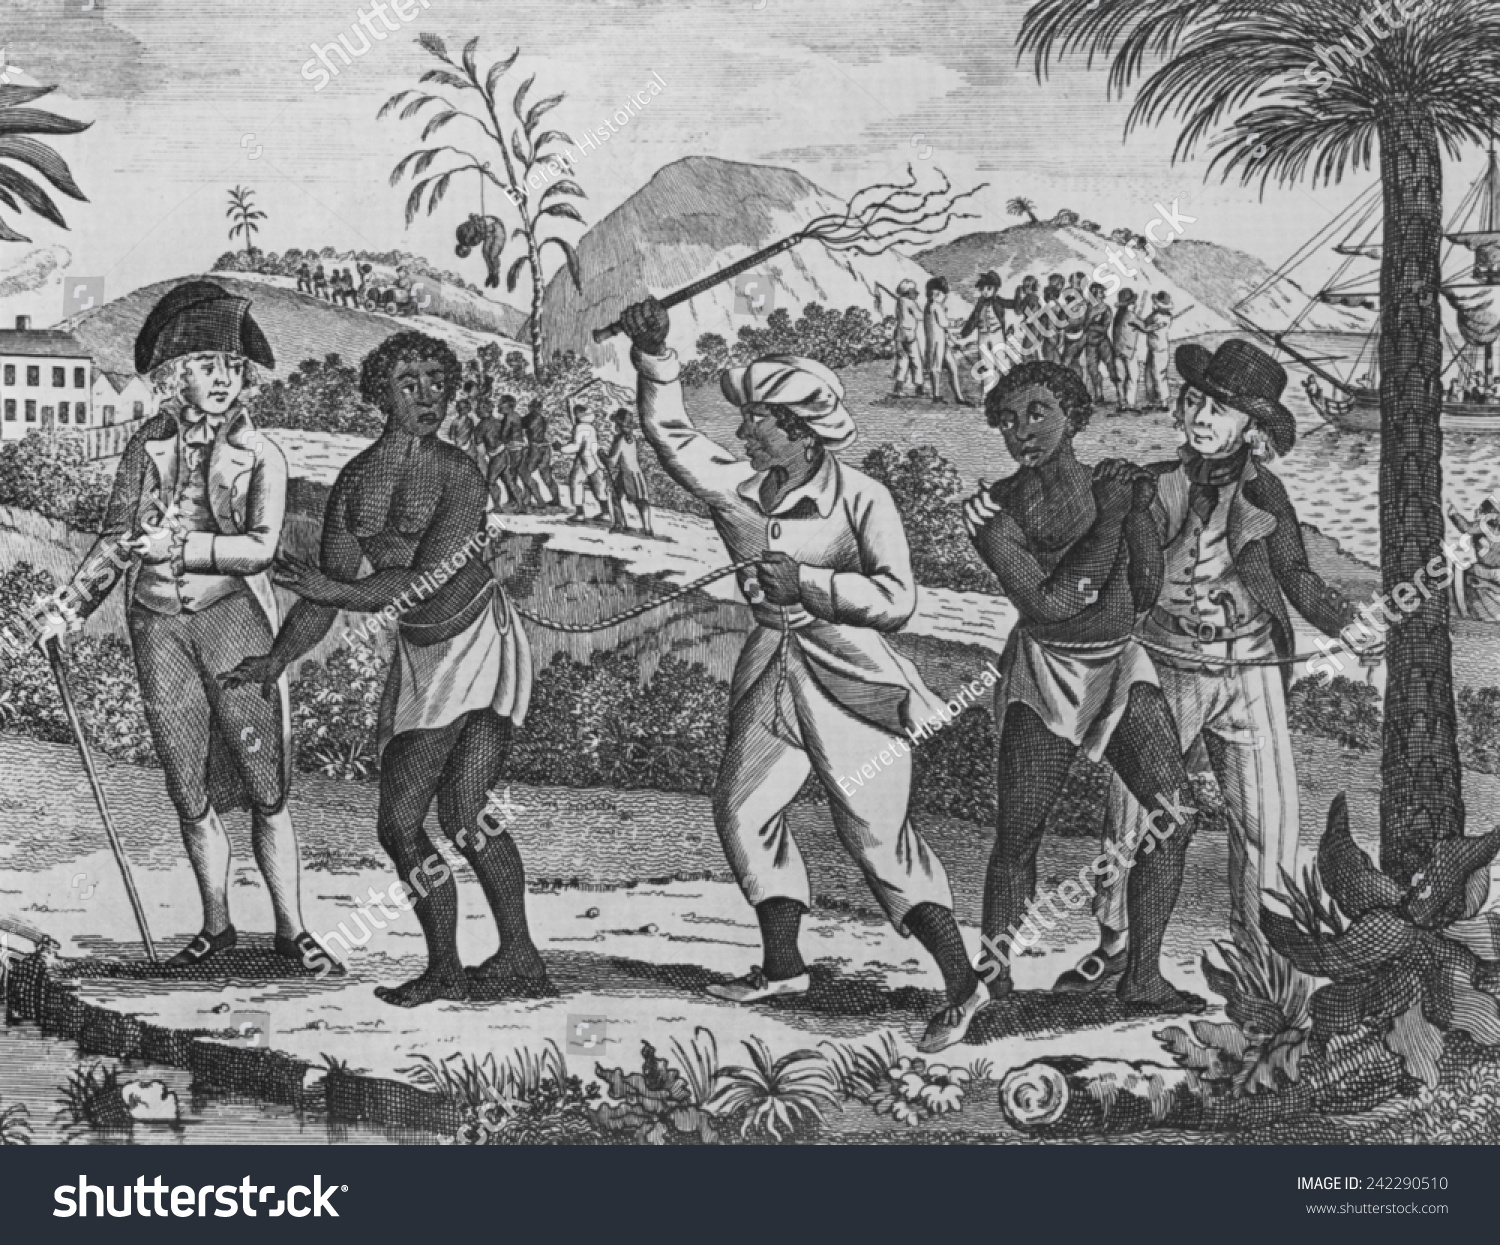 slavery in 18th century essay An 18th century plantation society what is a plantation society the plantation society was one which was highly stratified socially and economically.